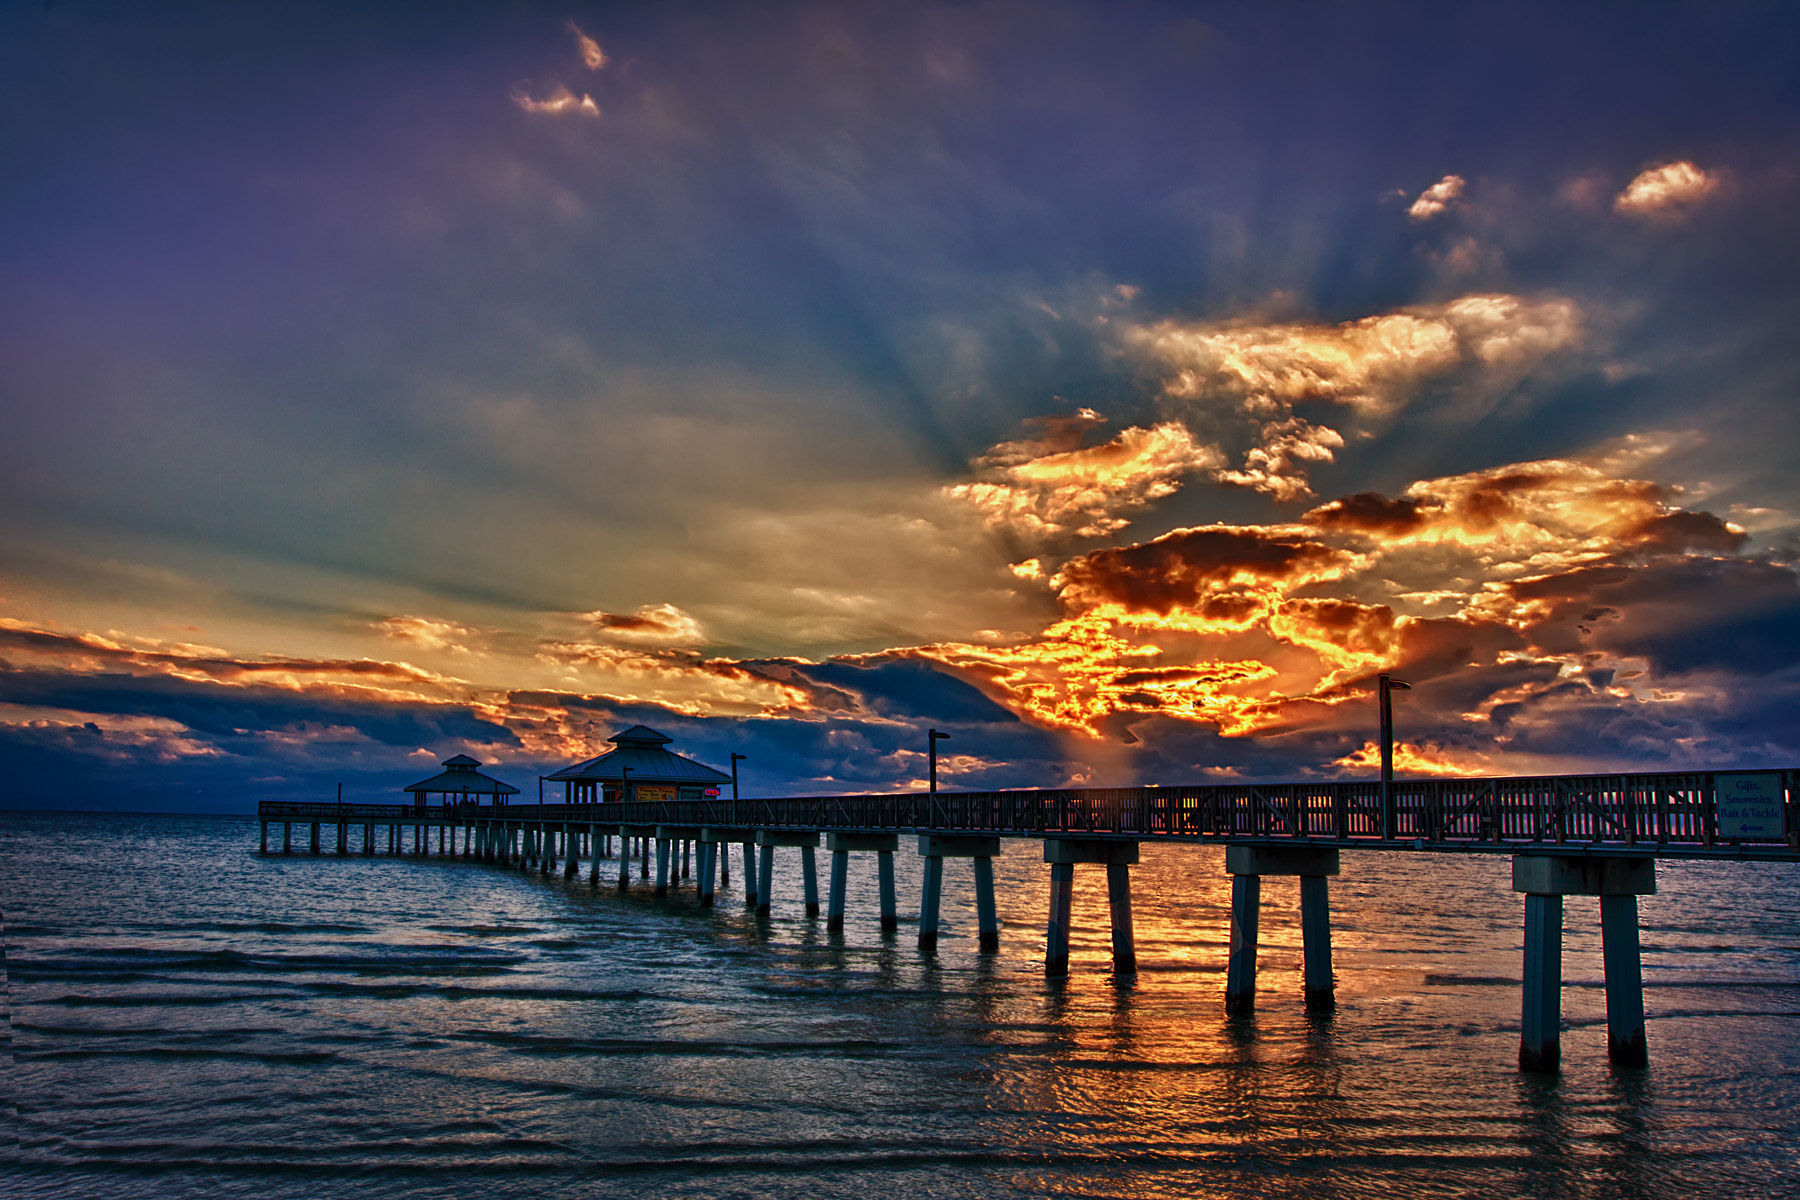 Photograph Sunset on the Gulf by Scott Evers on 500px